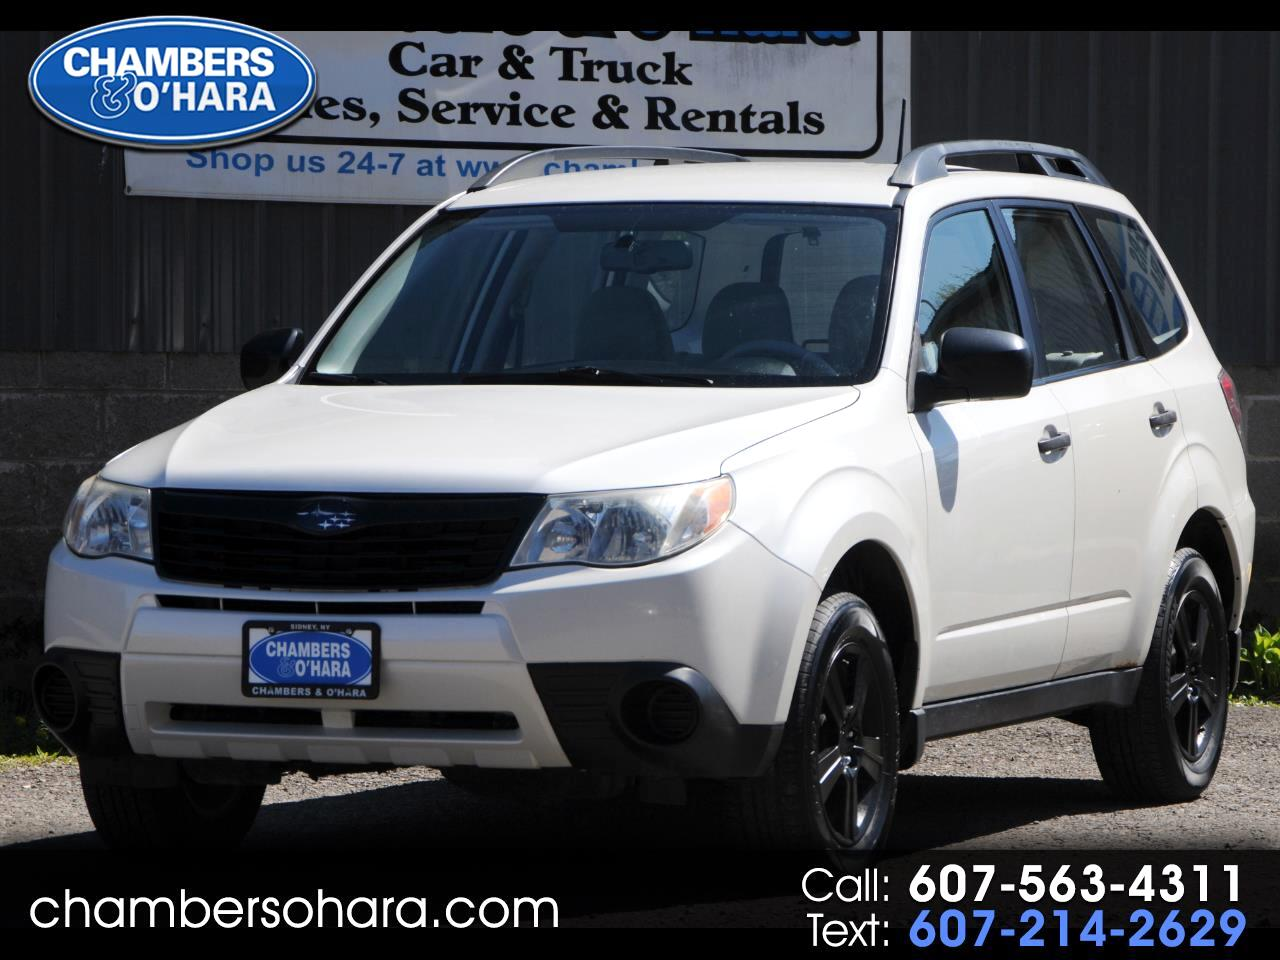 subaru forester for sale in south new berlin ny auto com auto com